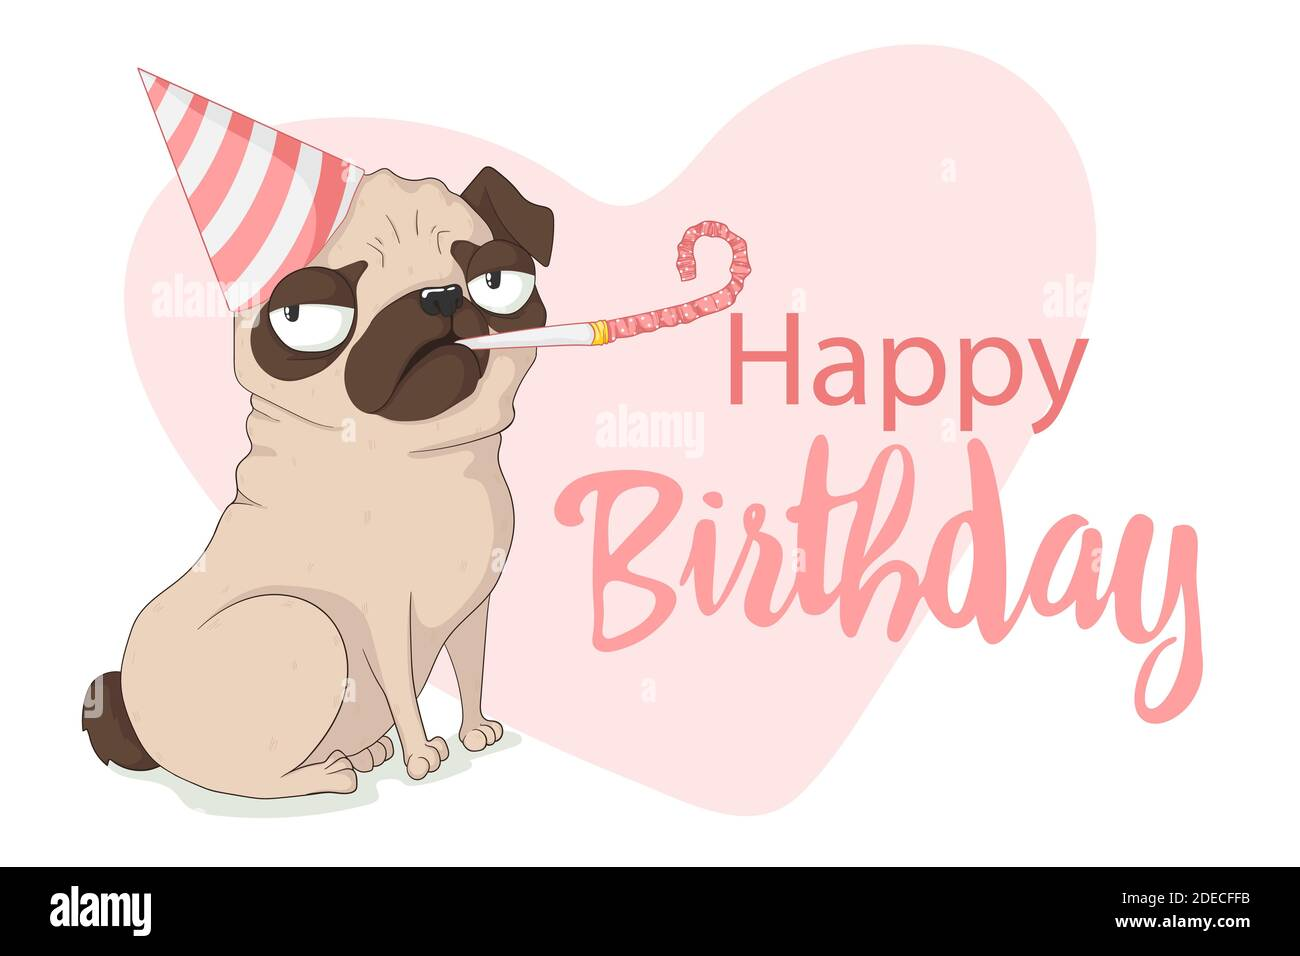 Cute grumpy pug dog with birthday cap and holiday whistle. Vector hand drawn illustration in cartoons style with slogan. Isolated on white background. Stock Vector